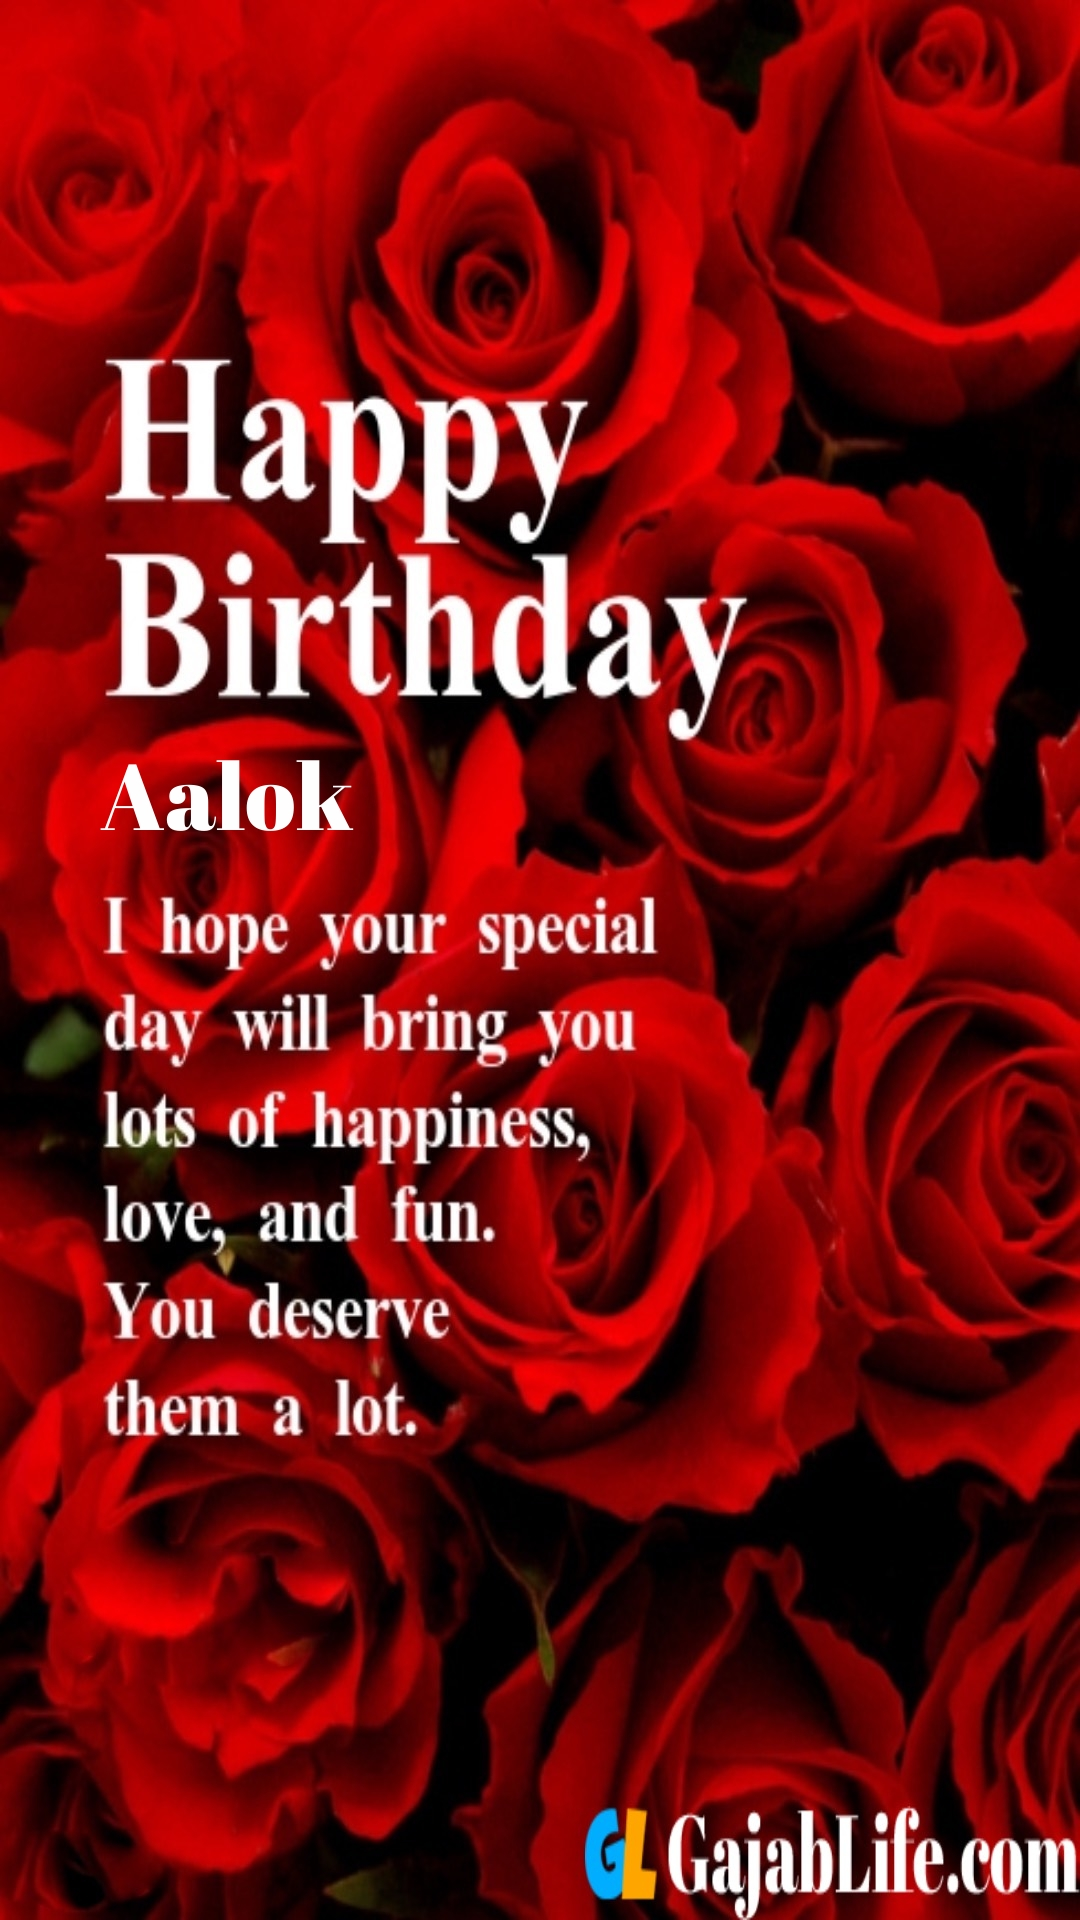 Aalok birthday greeting card with rose & love